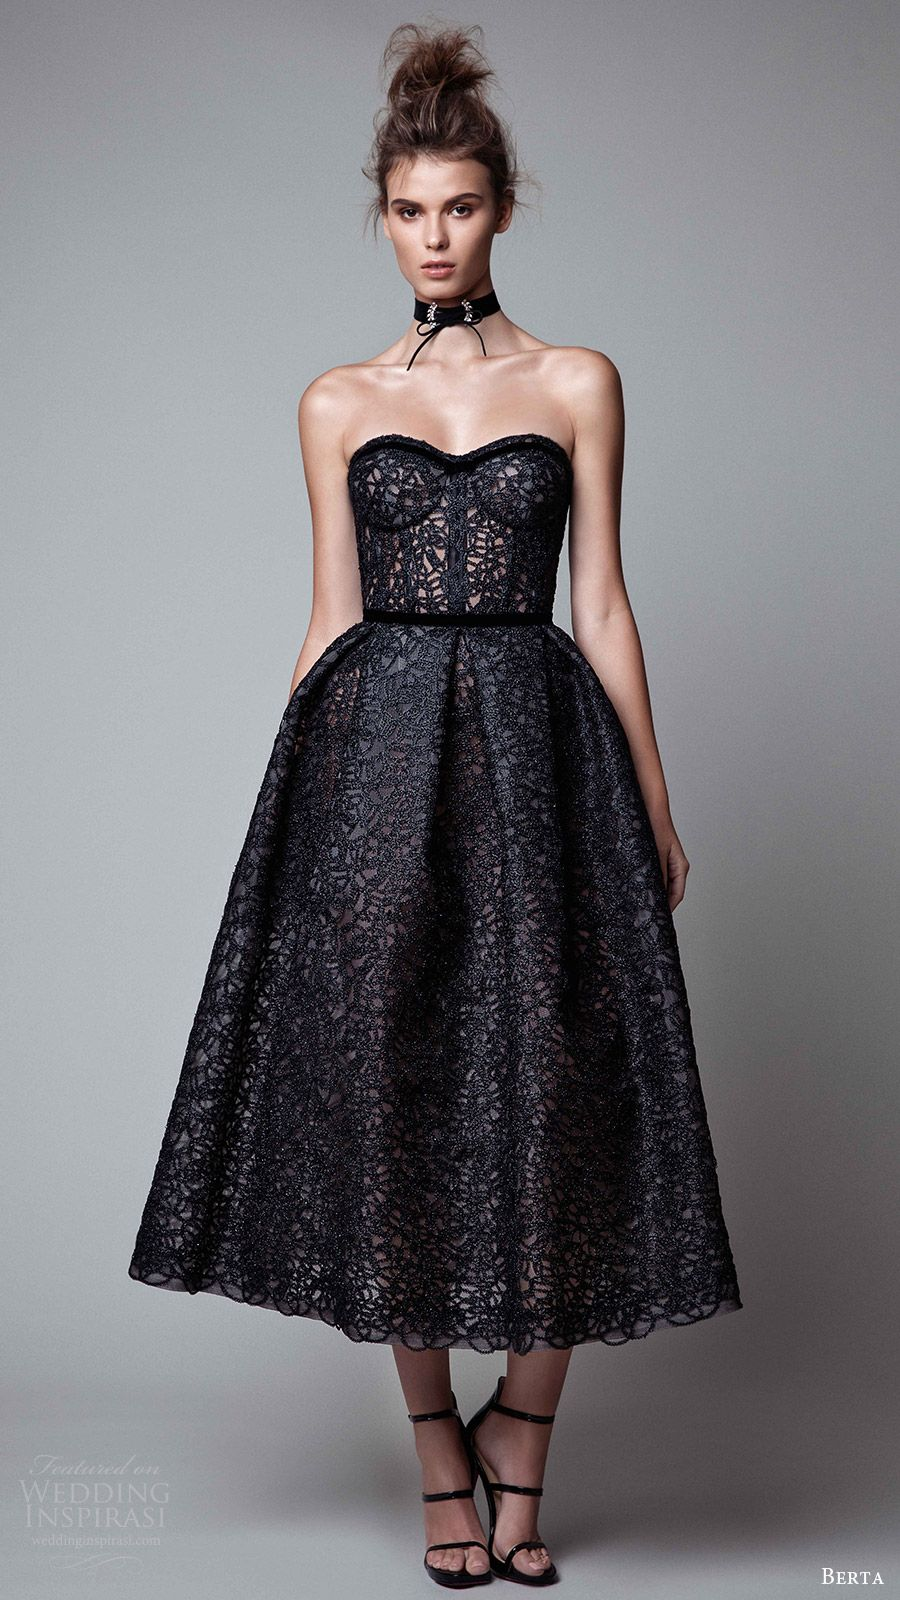 Berta rtw fall strapless sweetheart tea length ball